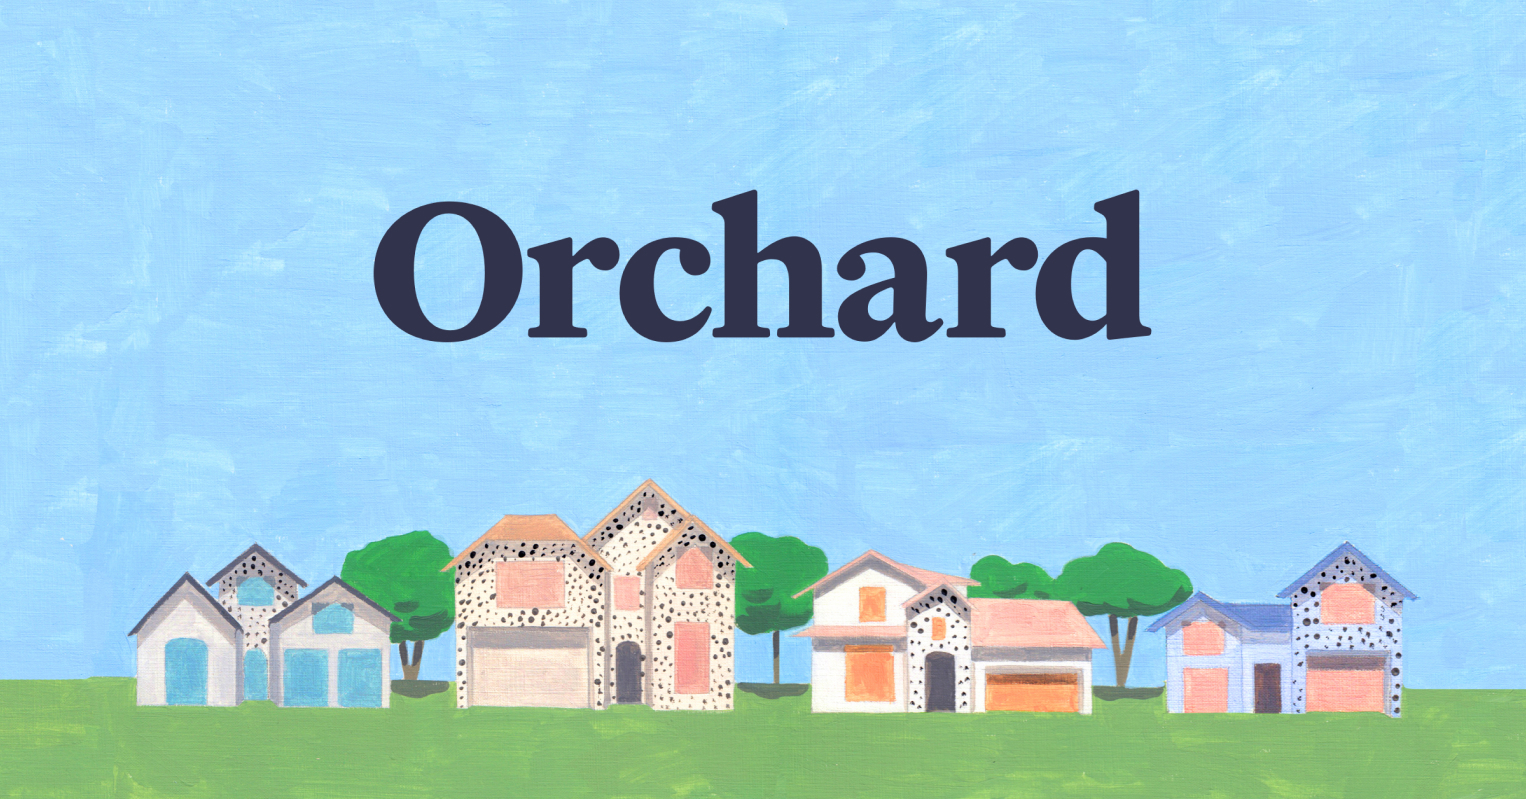 How Does Orchard Work?